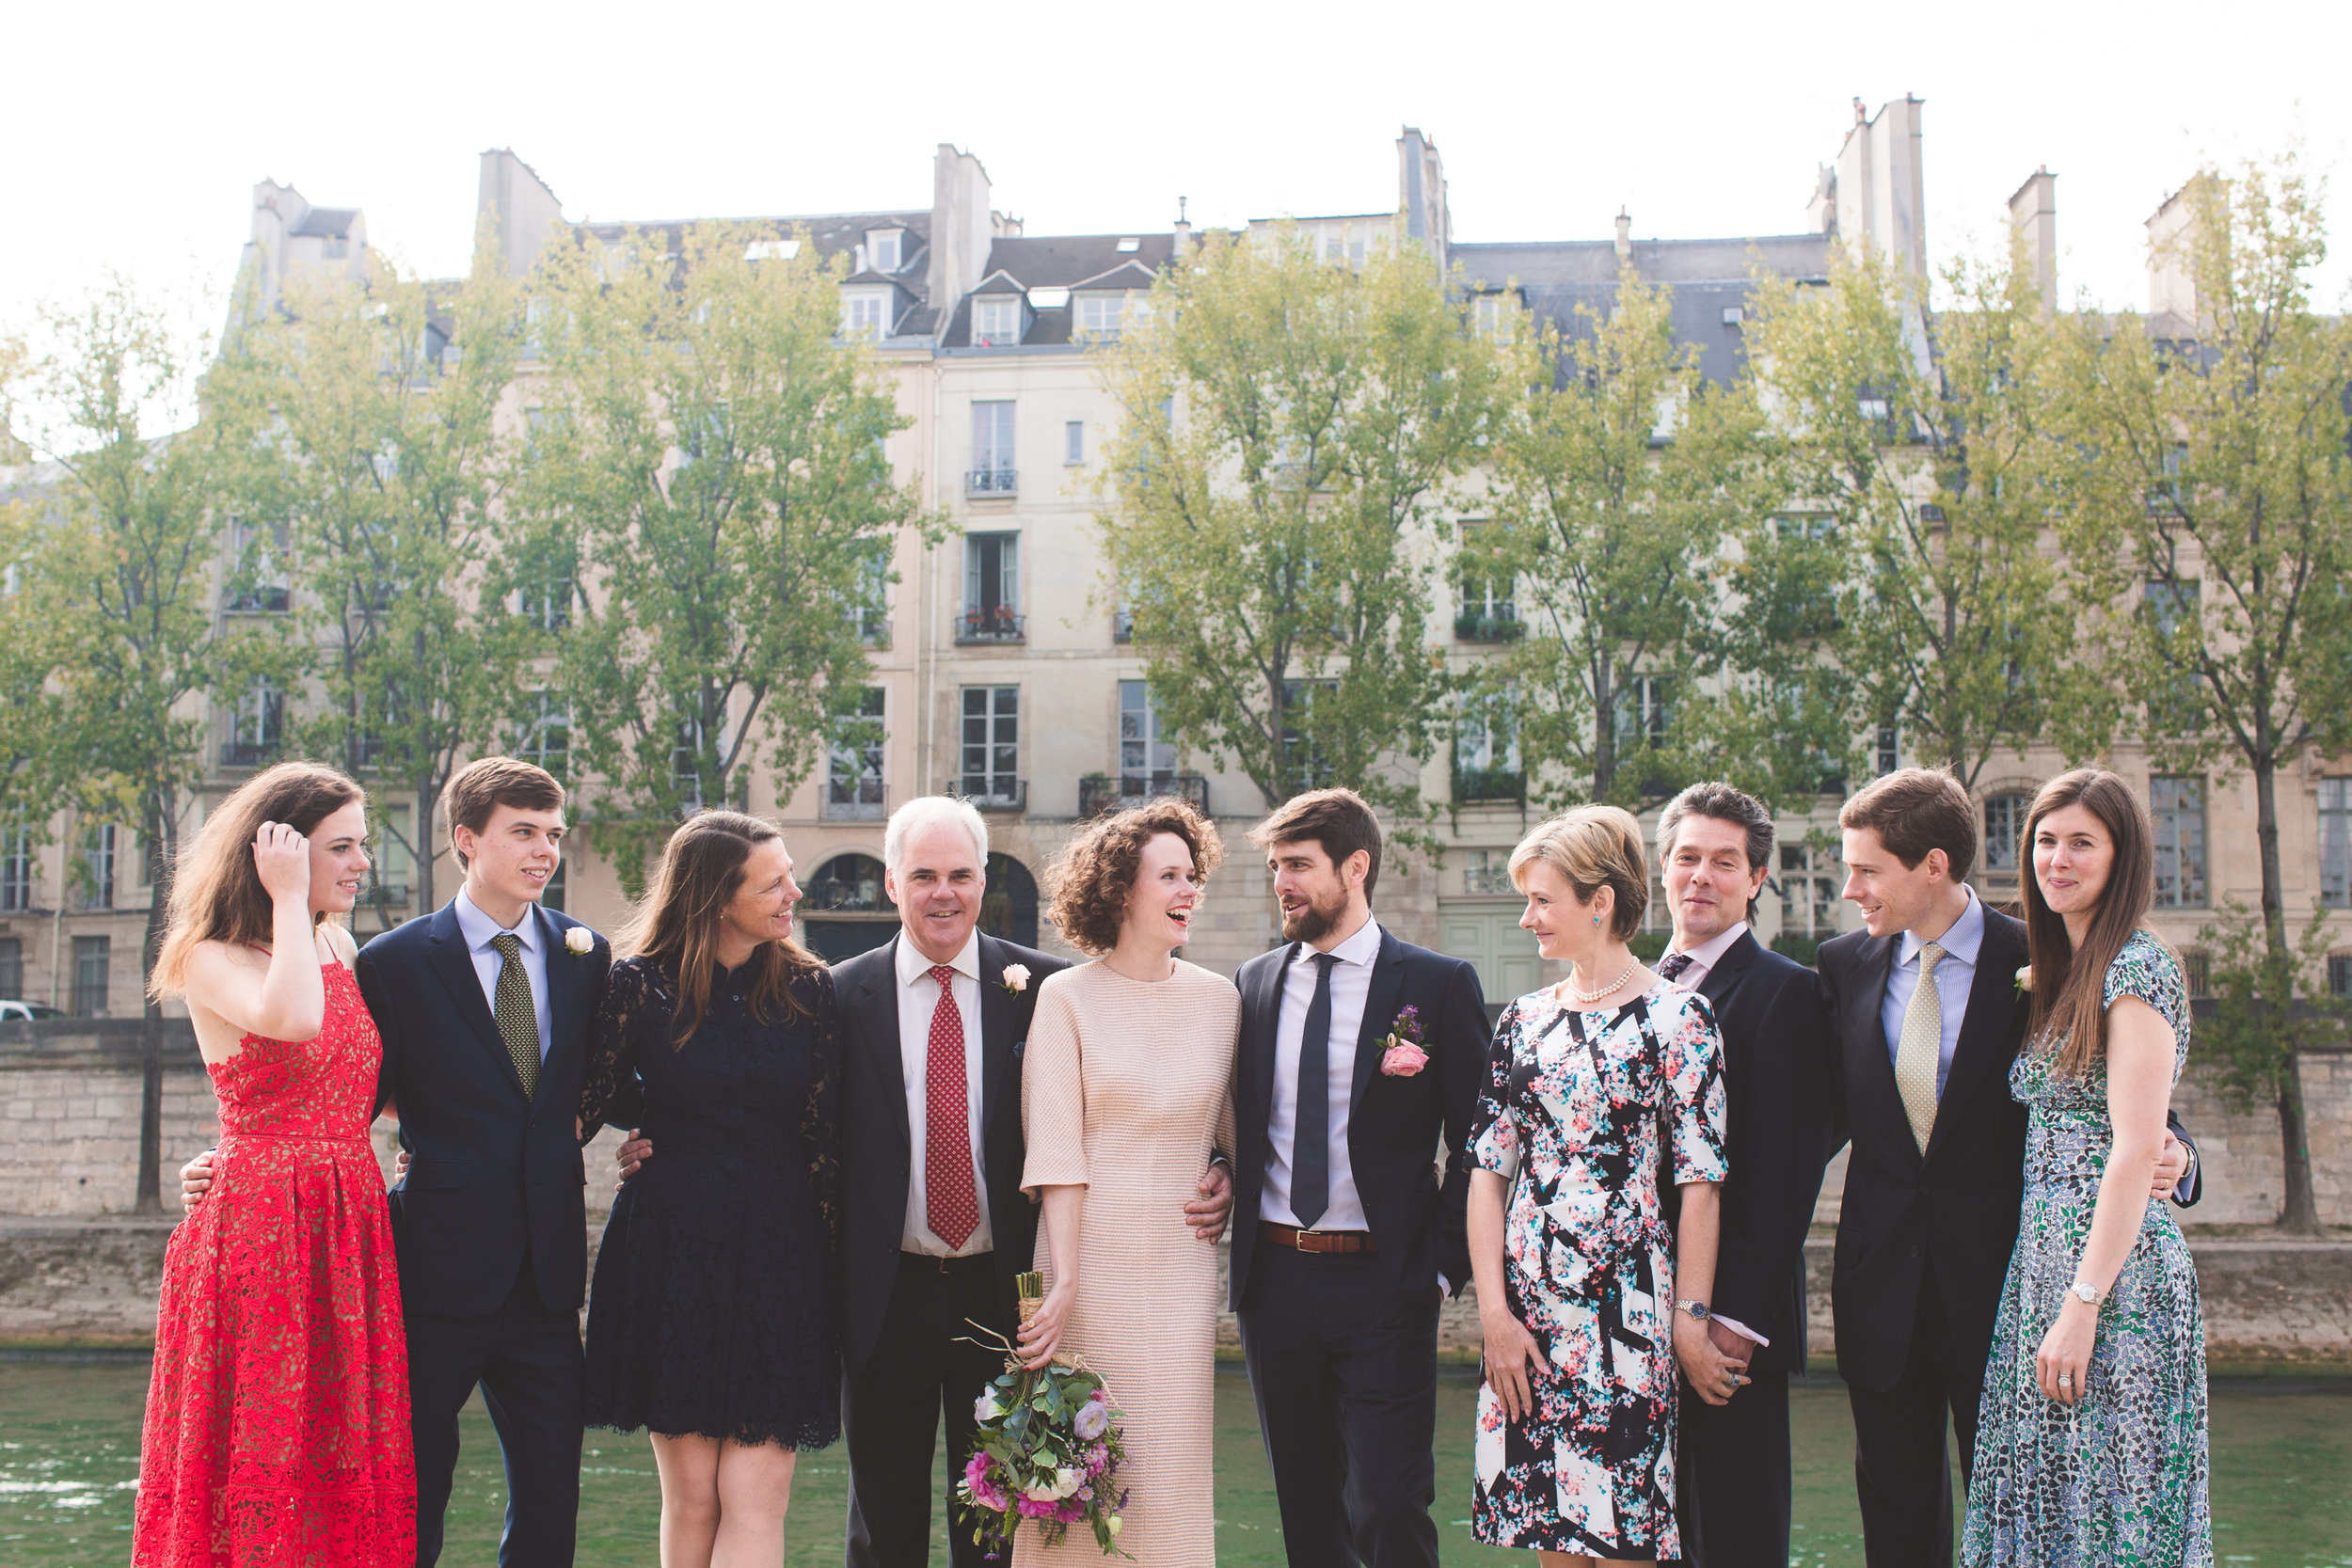 Emma&Nico_WeddingParis_by_UlaBlocksage-175.jpg